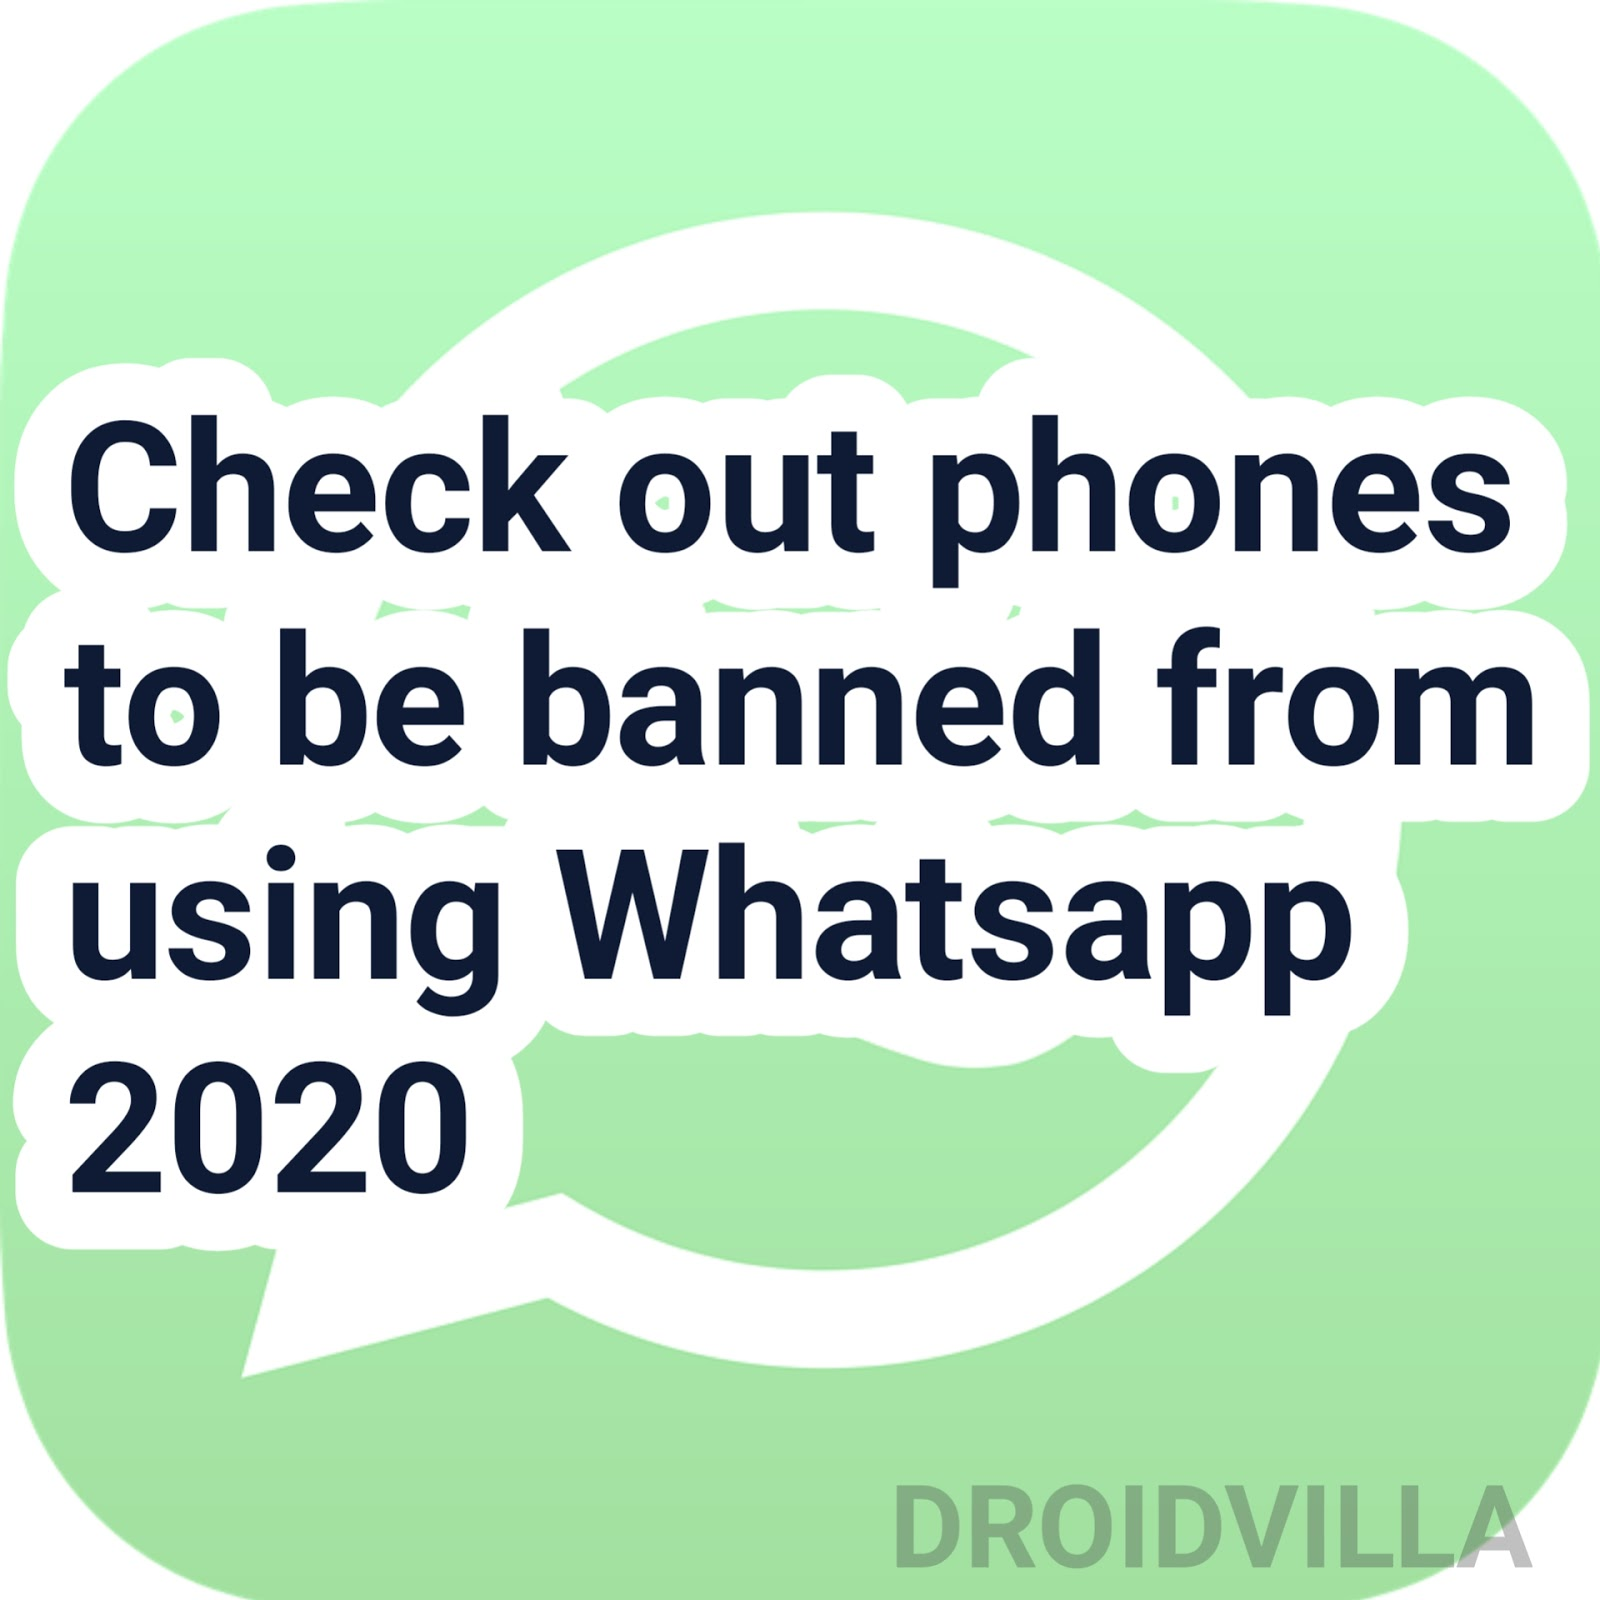 Check out phones to be banned from using Whatsapp 2020